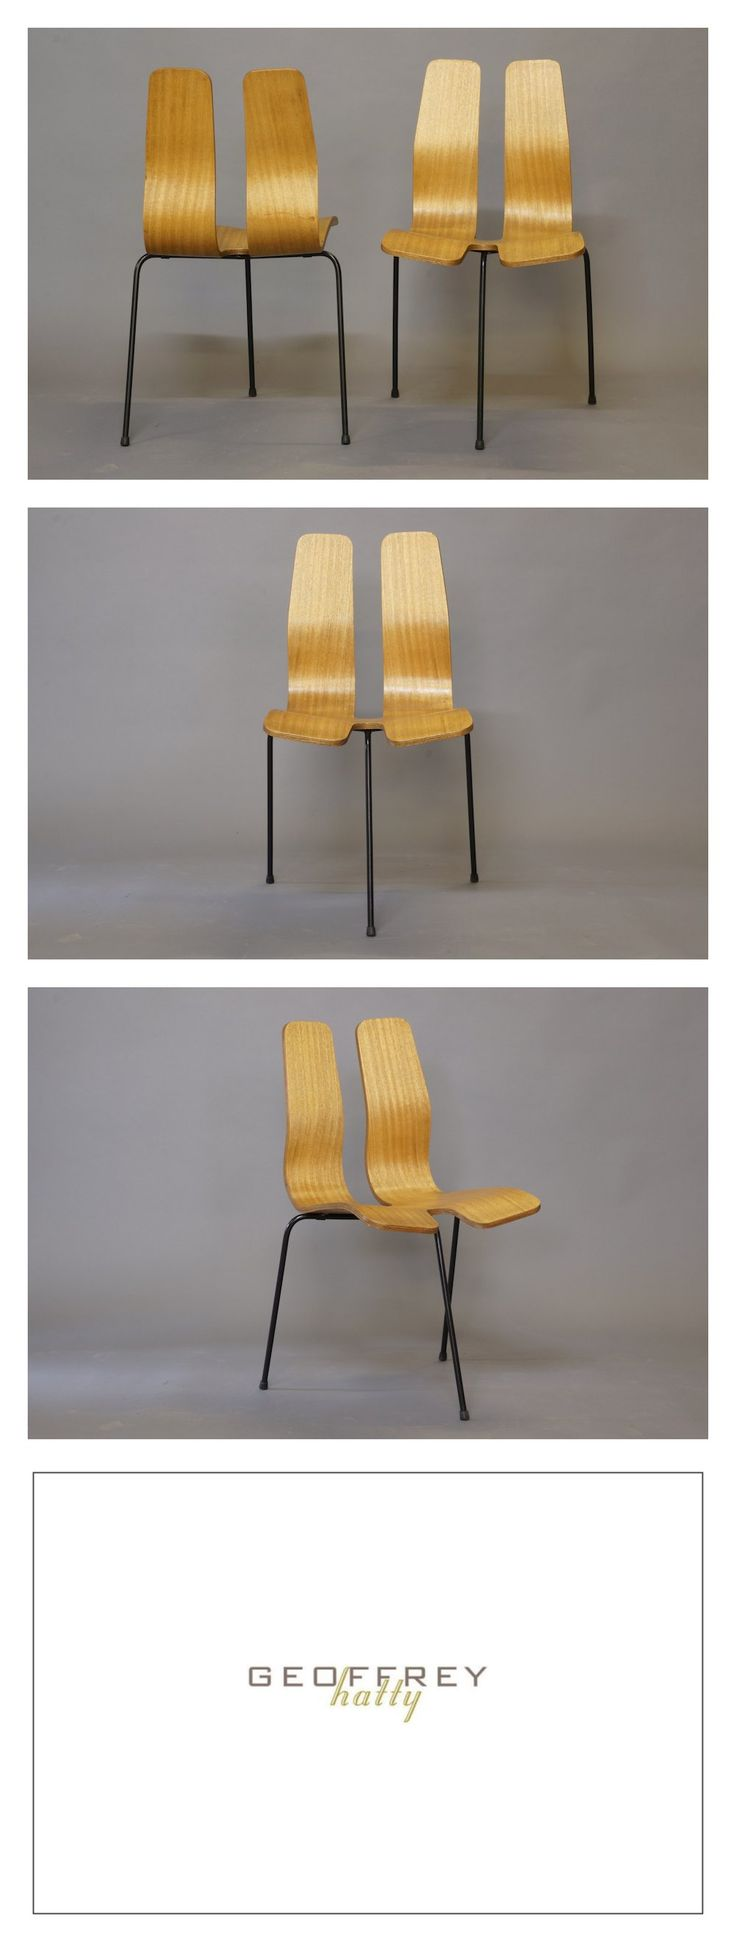 Good Clement Meadmore Pair Of Plywood 3 Legged Chairs, Rare, C.1955.